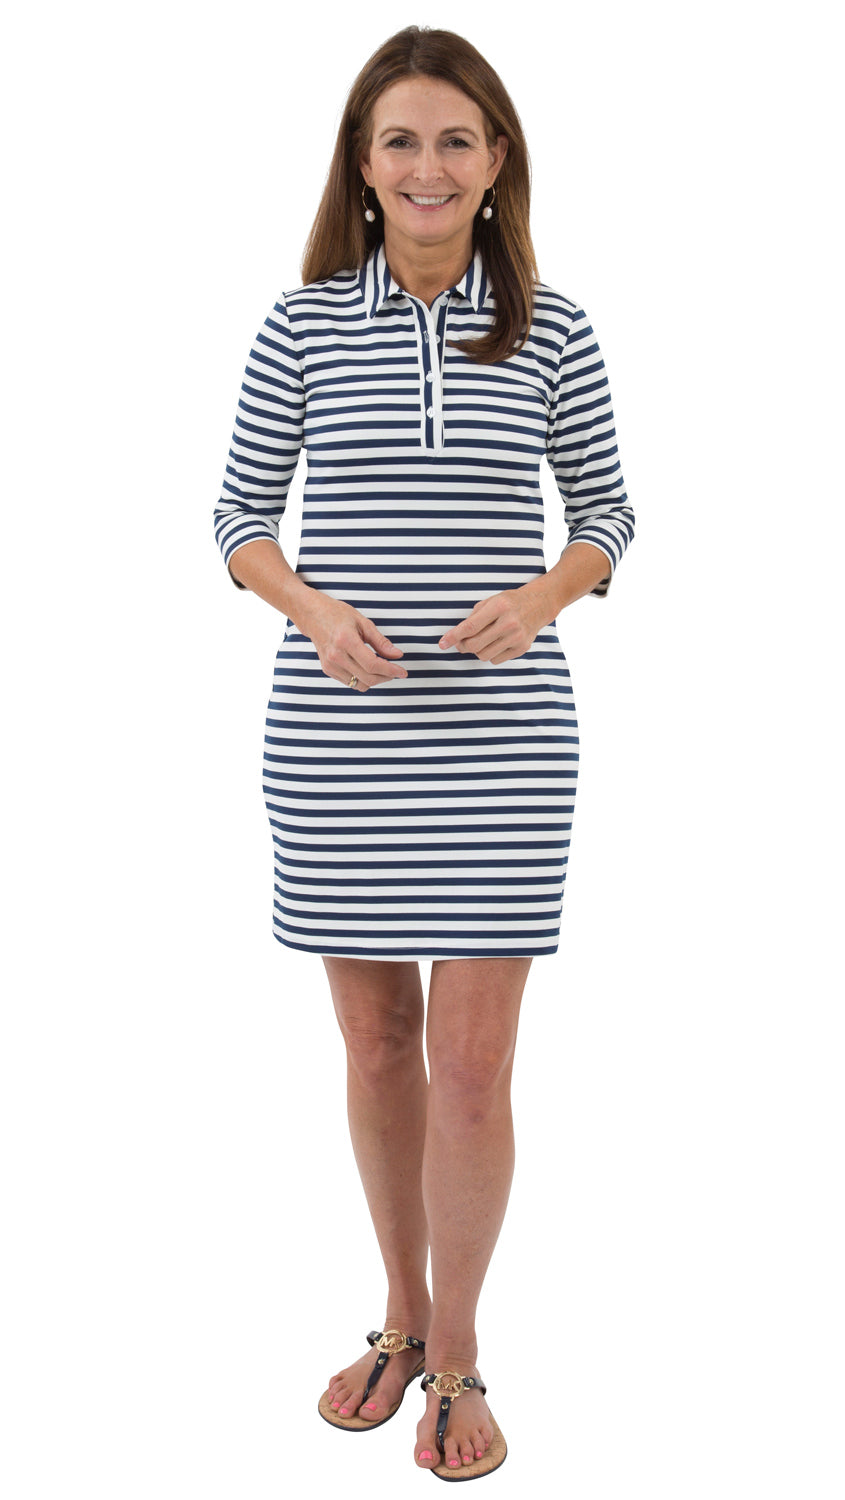 Port Dress - Wide Navy/White Stripe- SAMPLE FINAL SALE